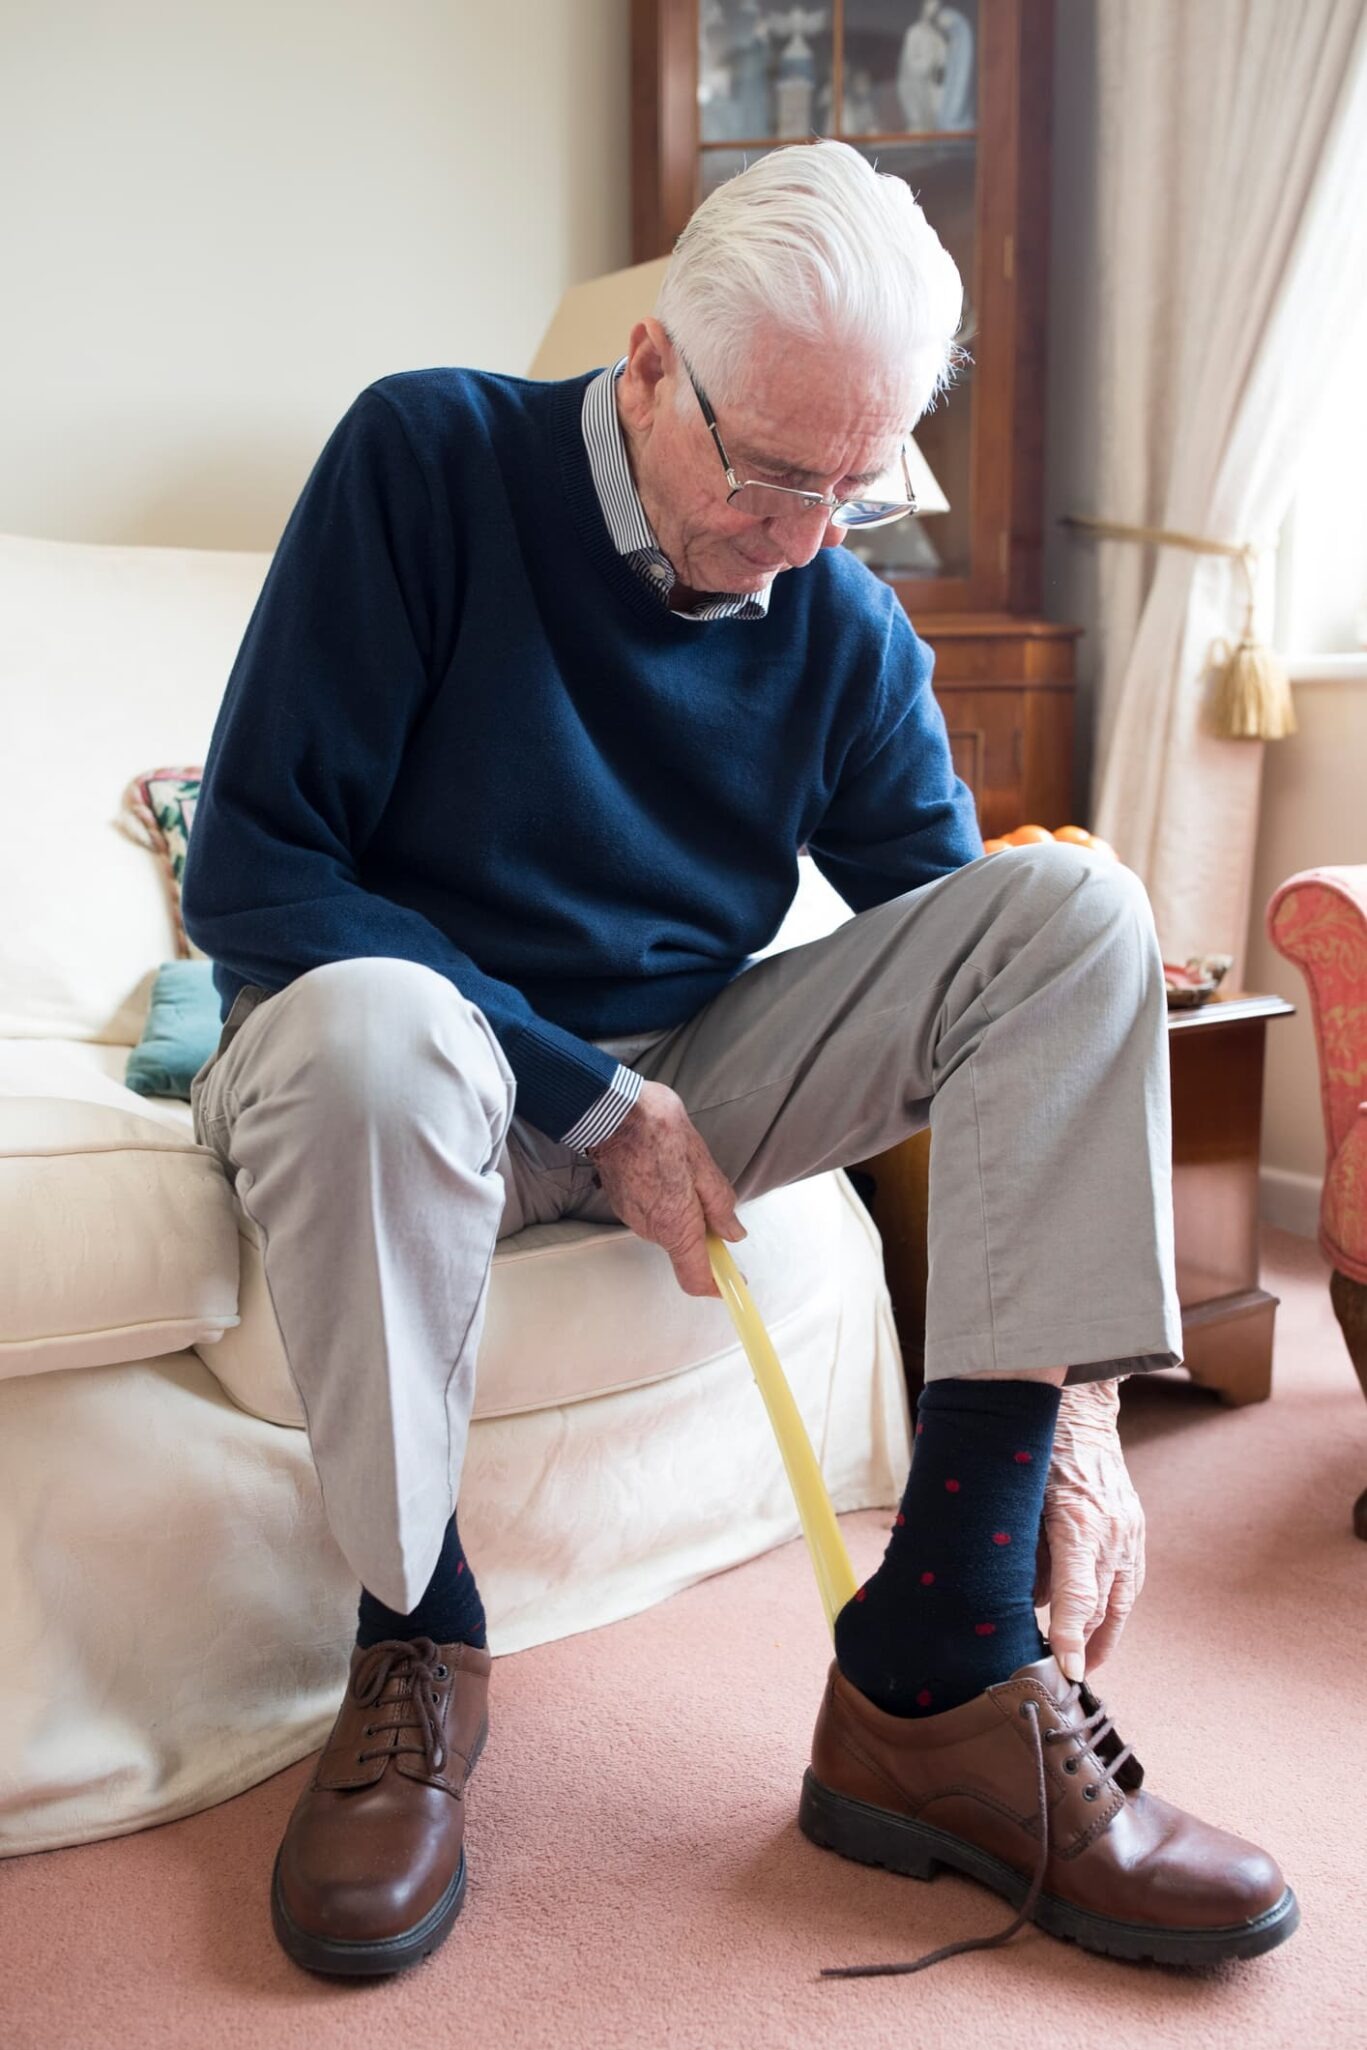 An older man sits on a couch and uses a long-handled shoe-horn to aid in putting on shoes.